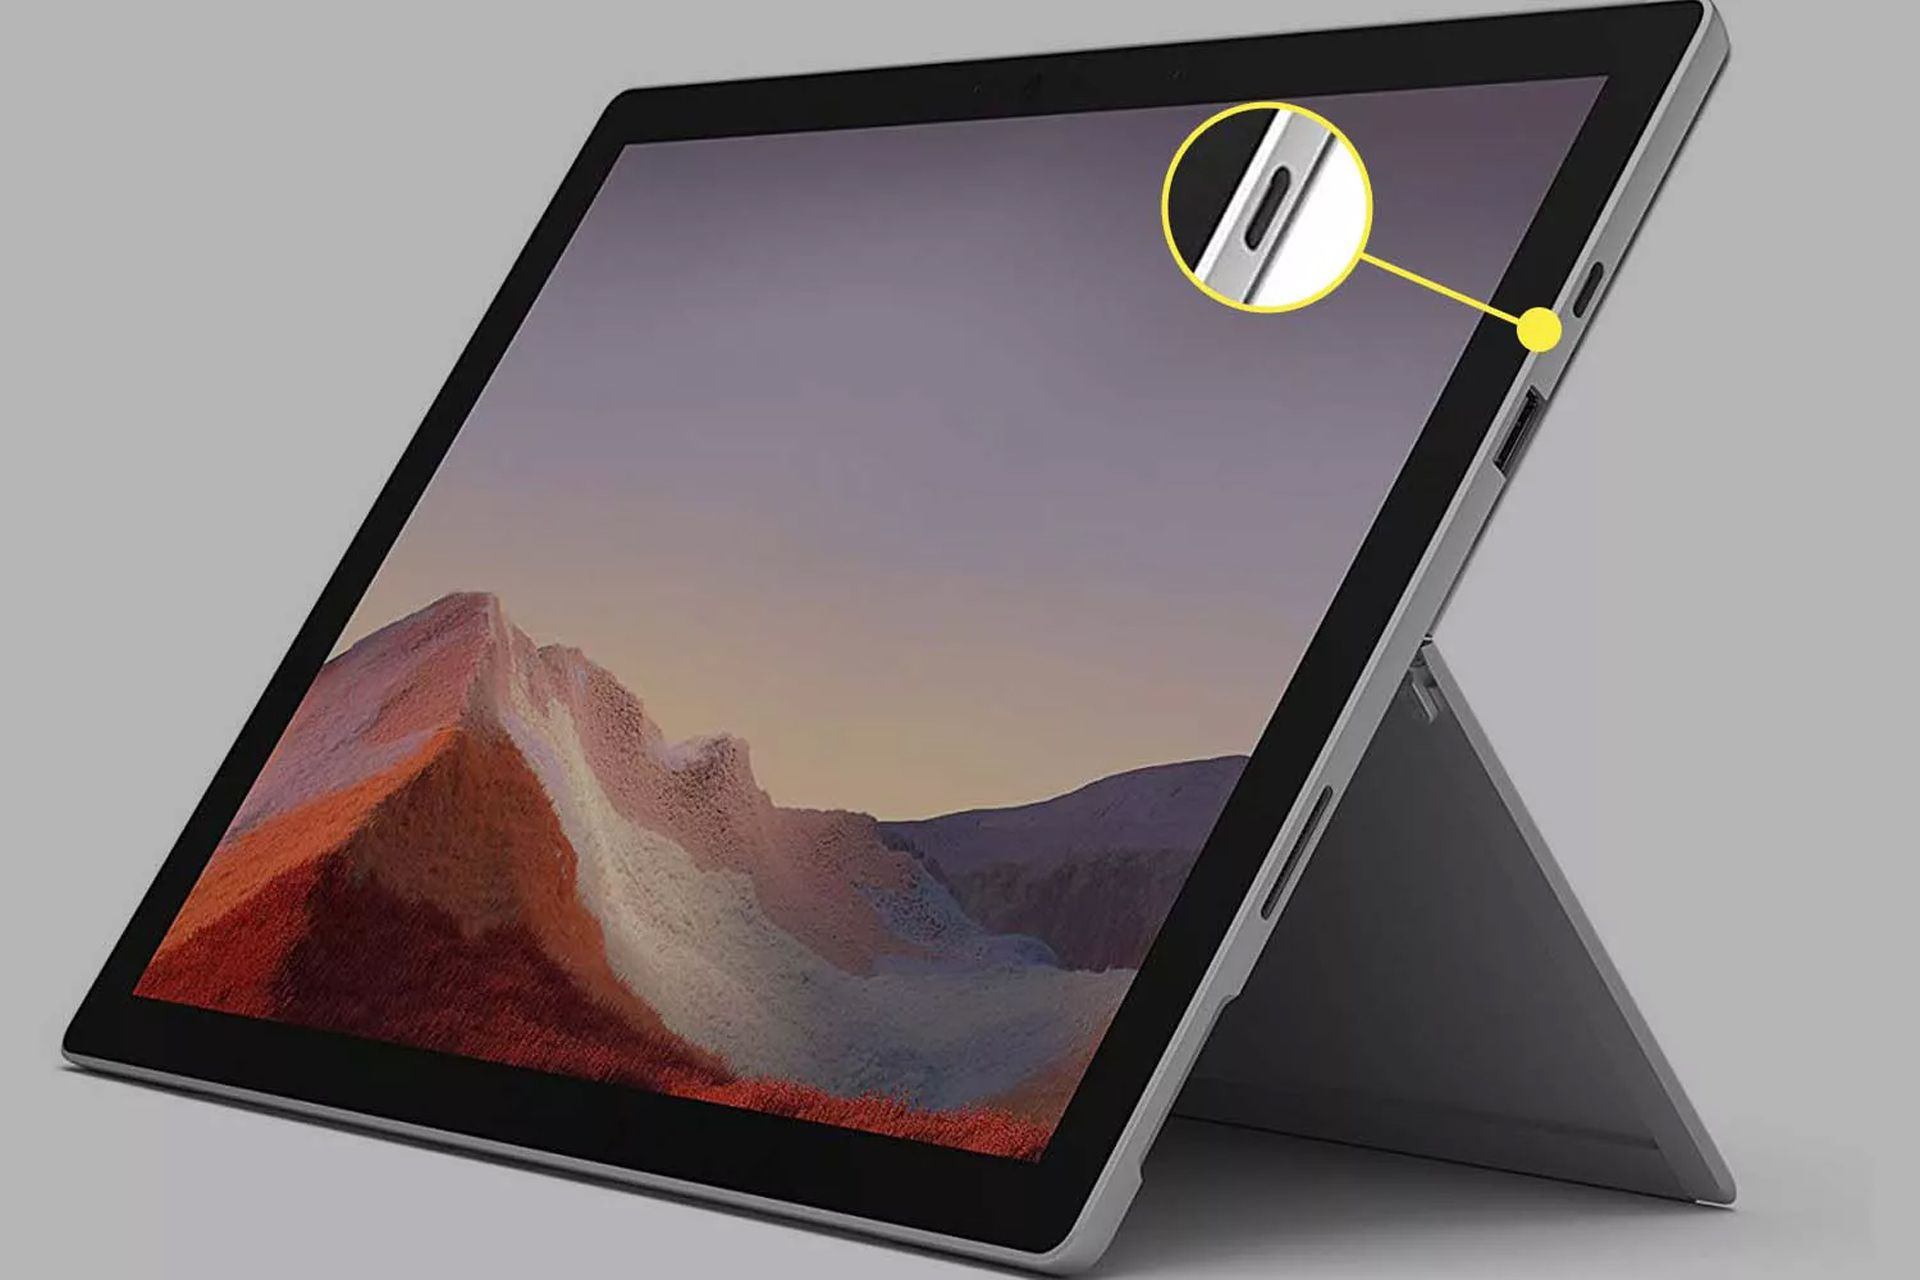 Microsoft Surface Pro 7 USB port for connecting to a monitor.